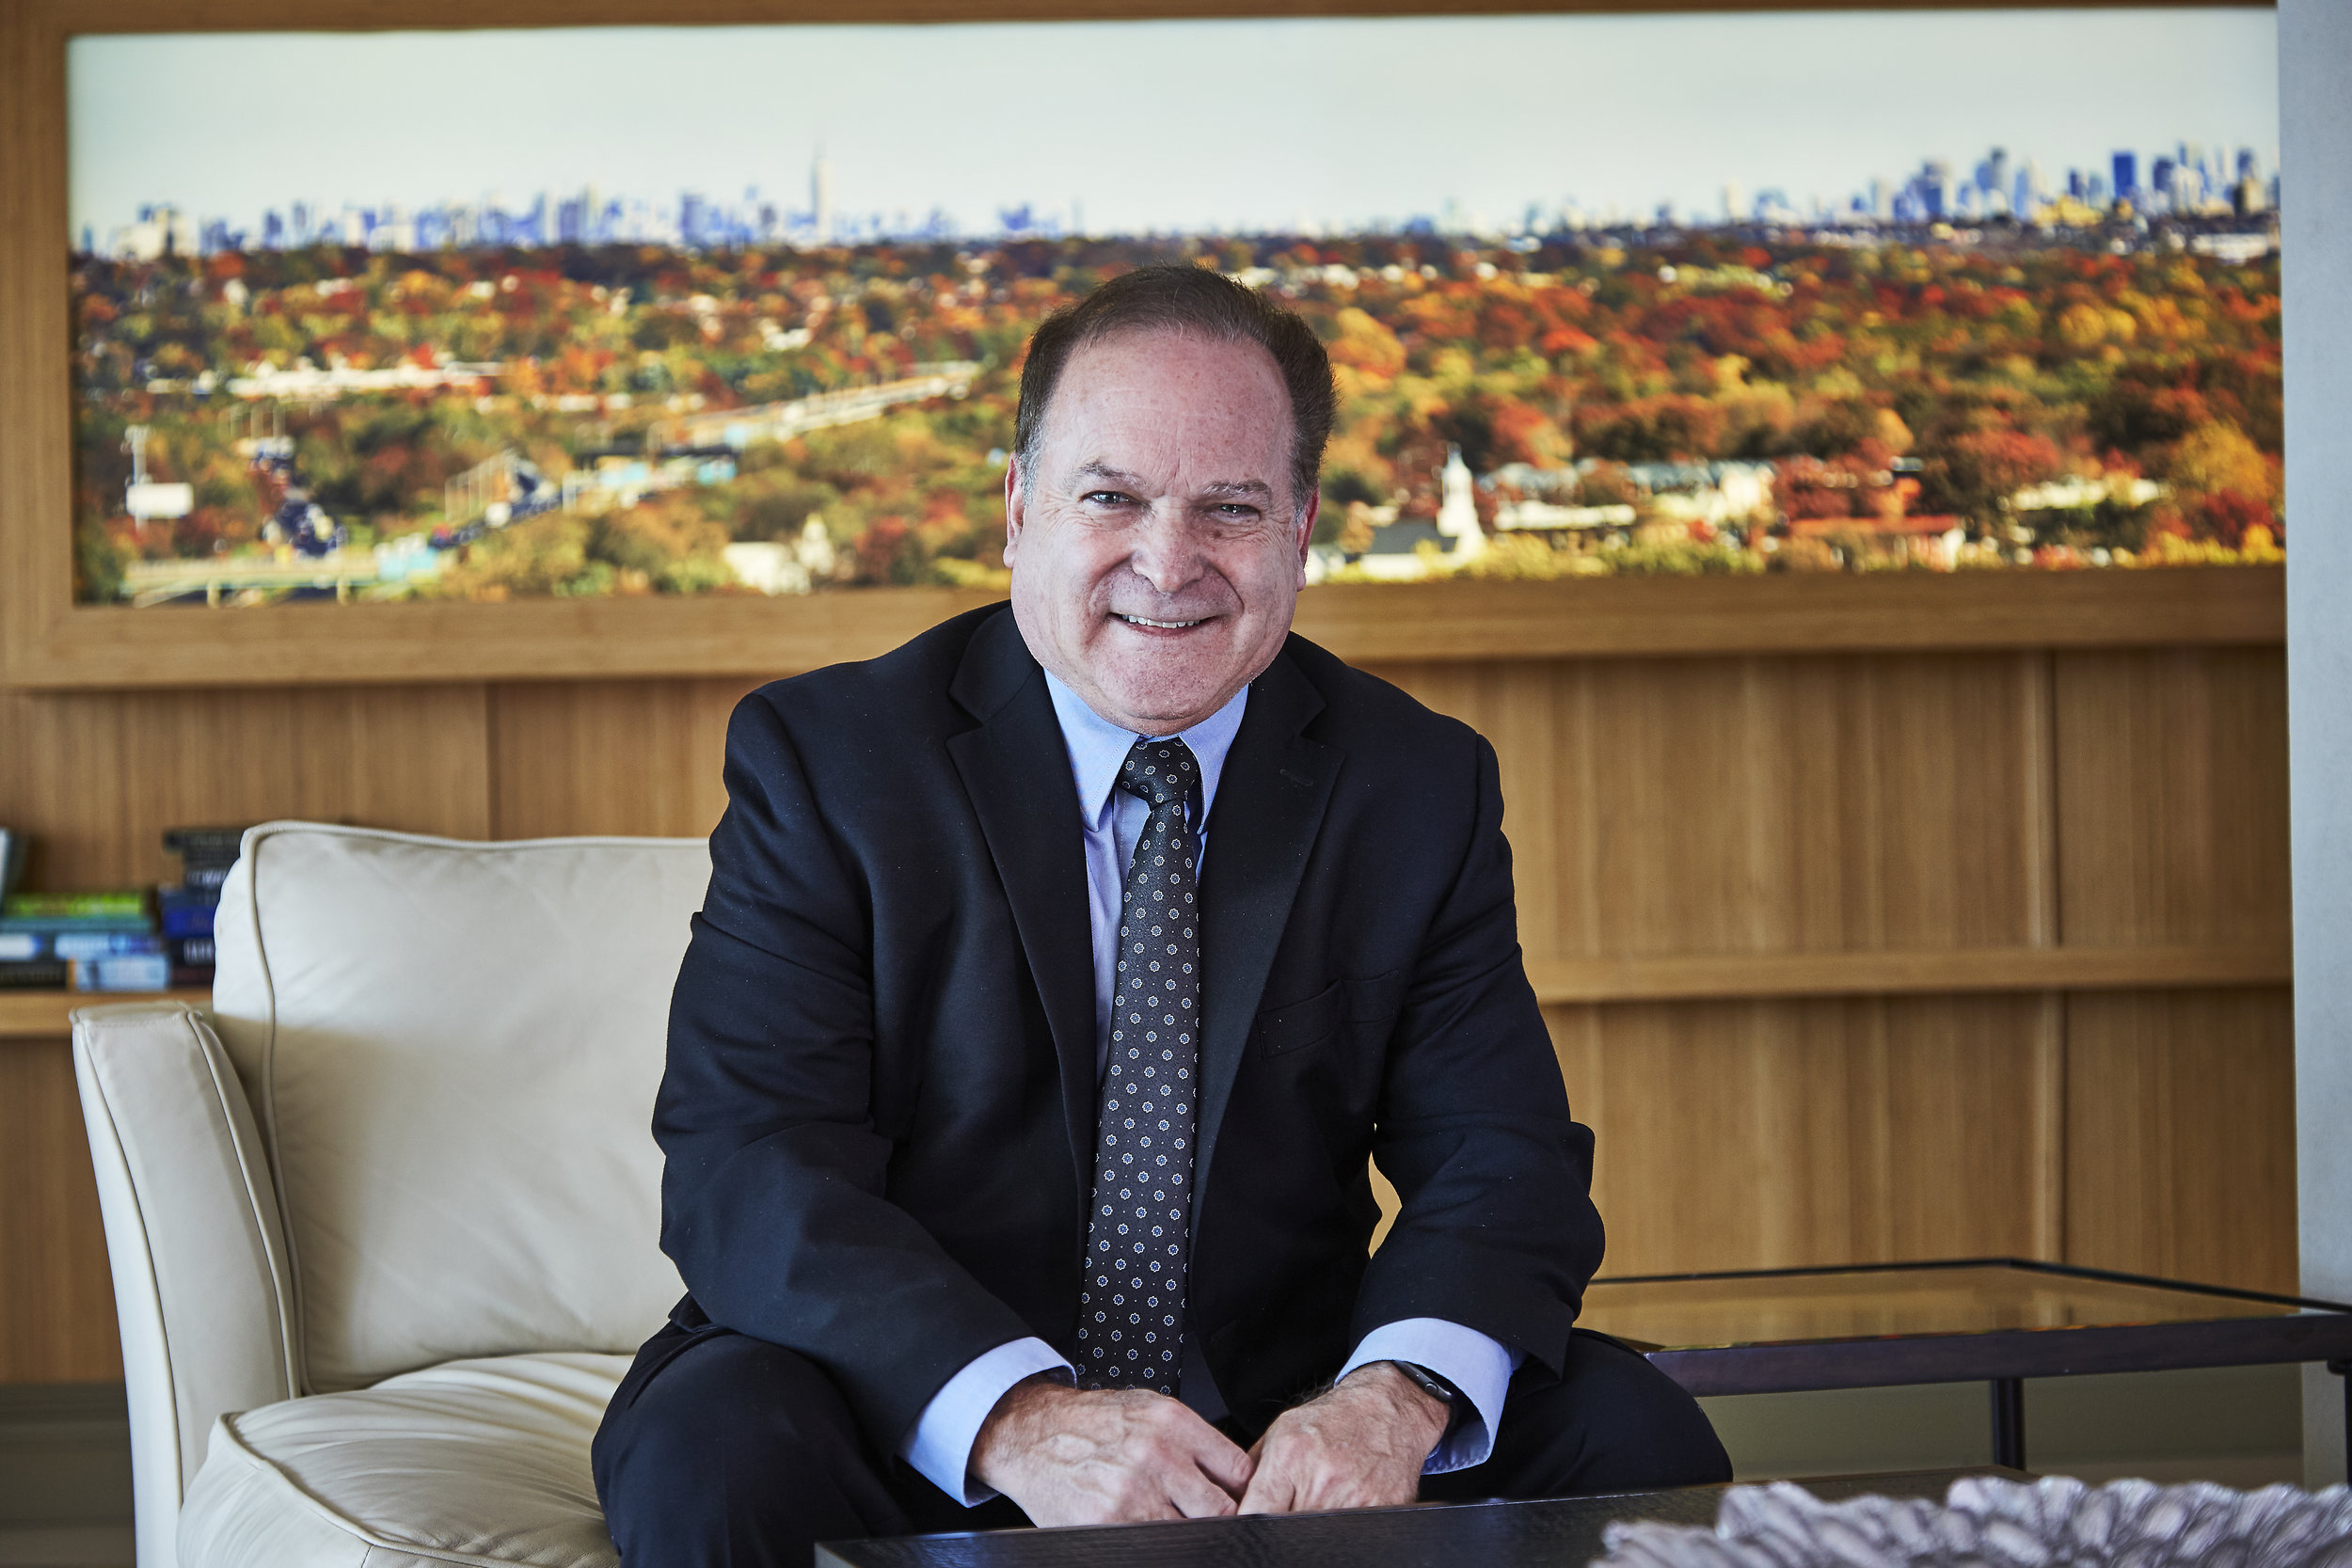 Alan joins PolitickerNJ's Power List. - Click here to see the other 99 members.